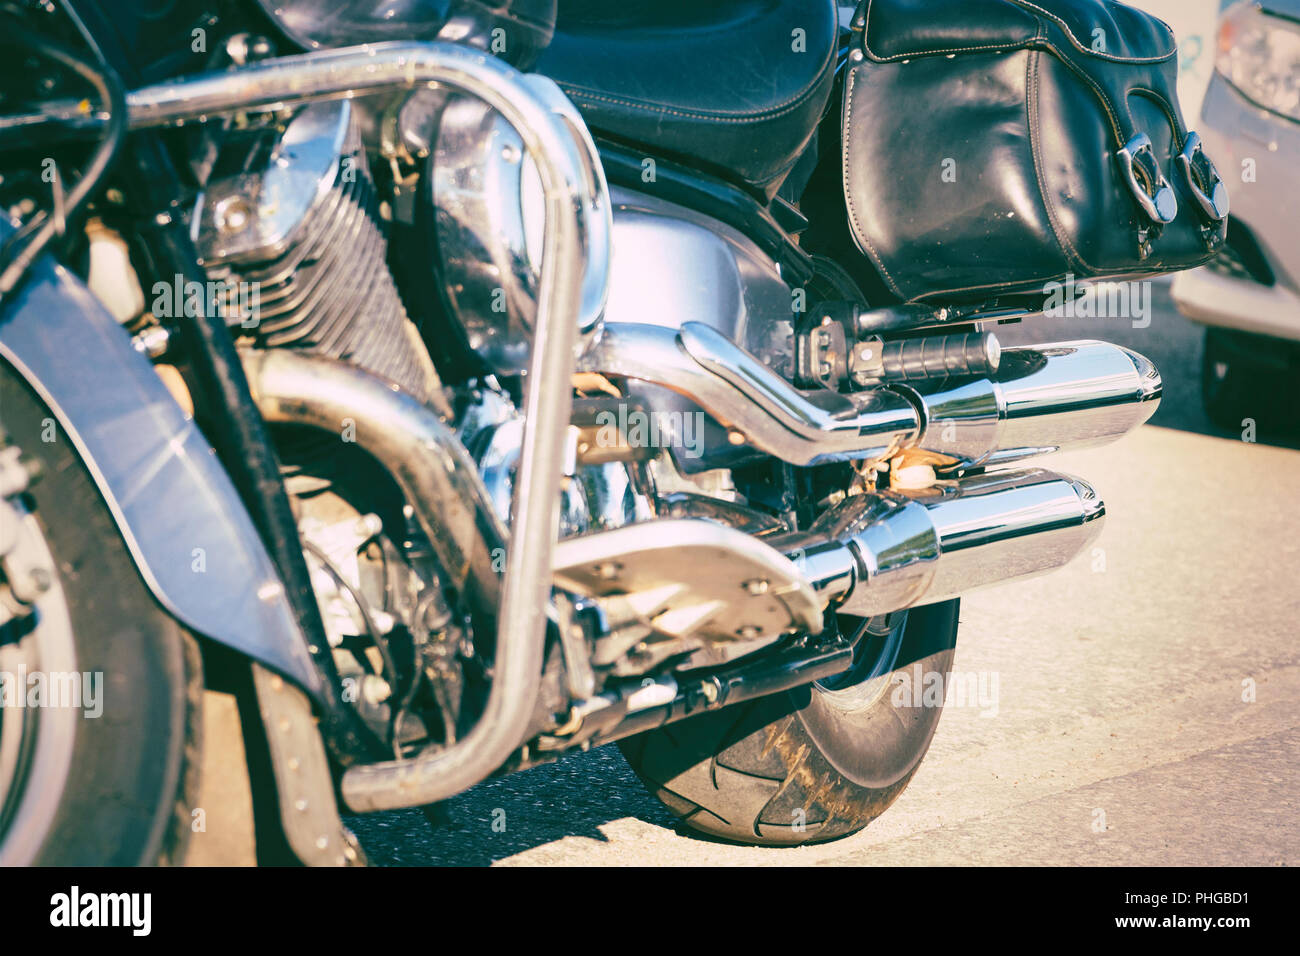 Black leather bag on a black powerful motorcycle - Stock Image